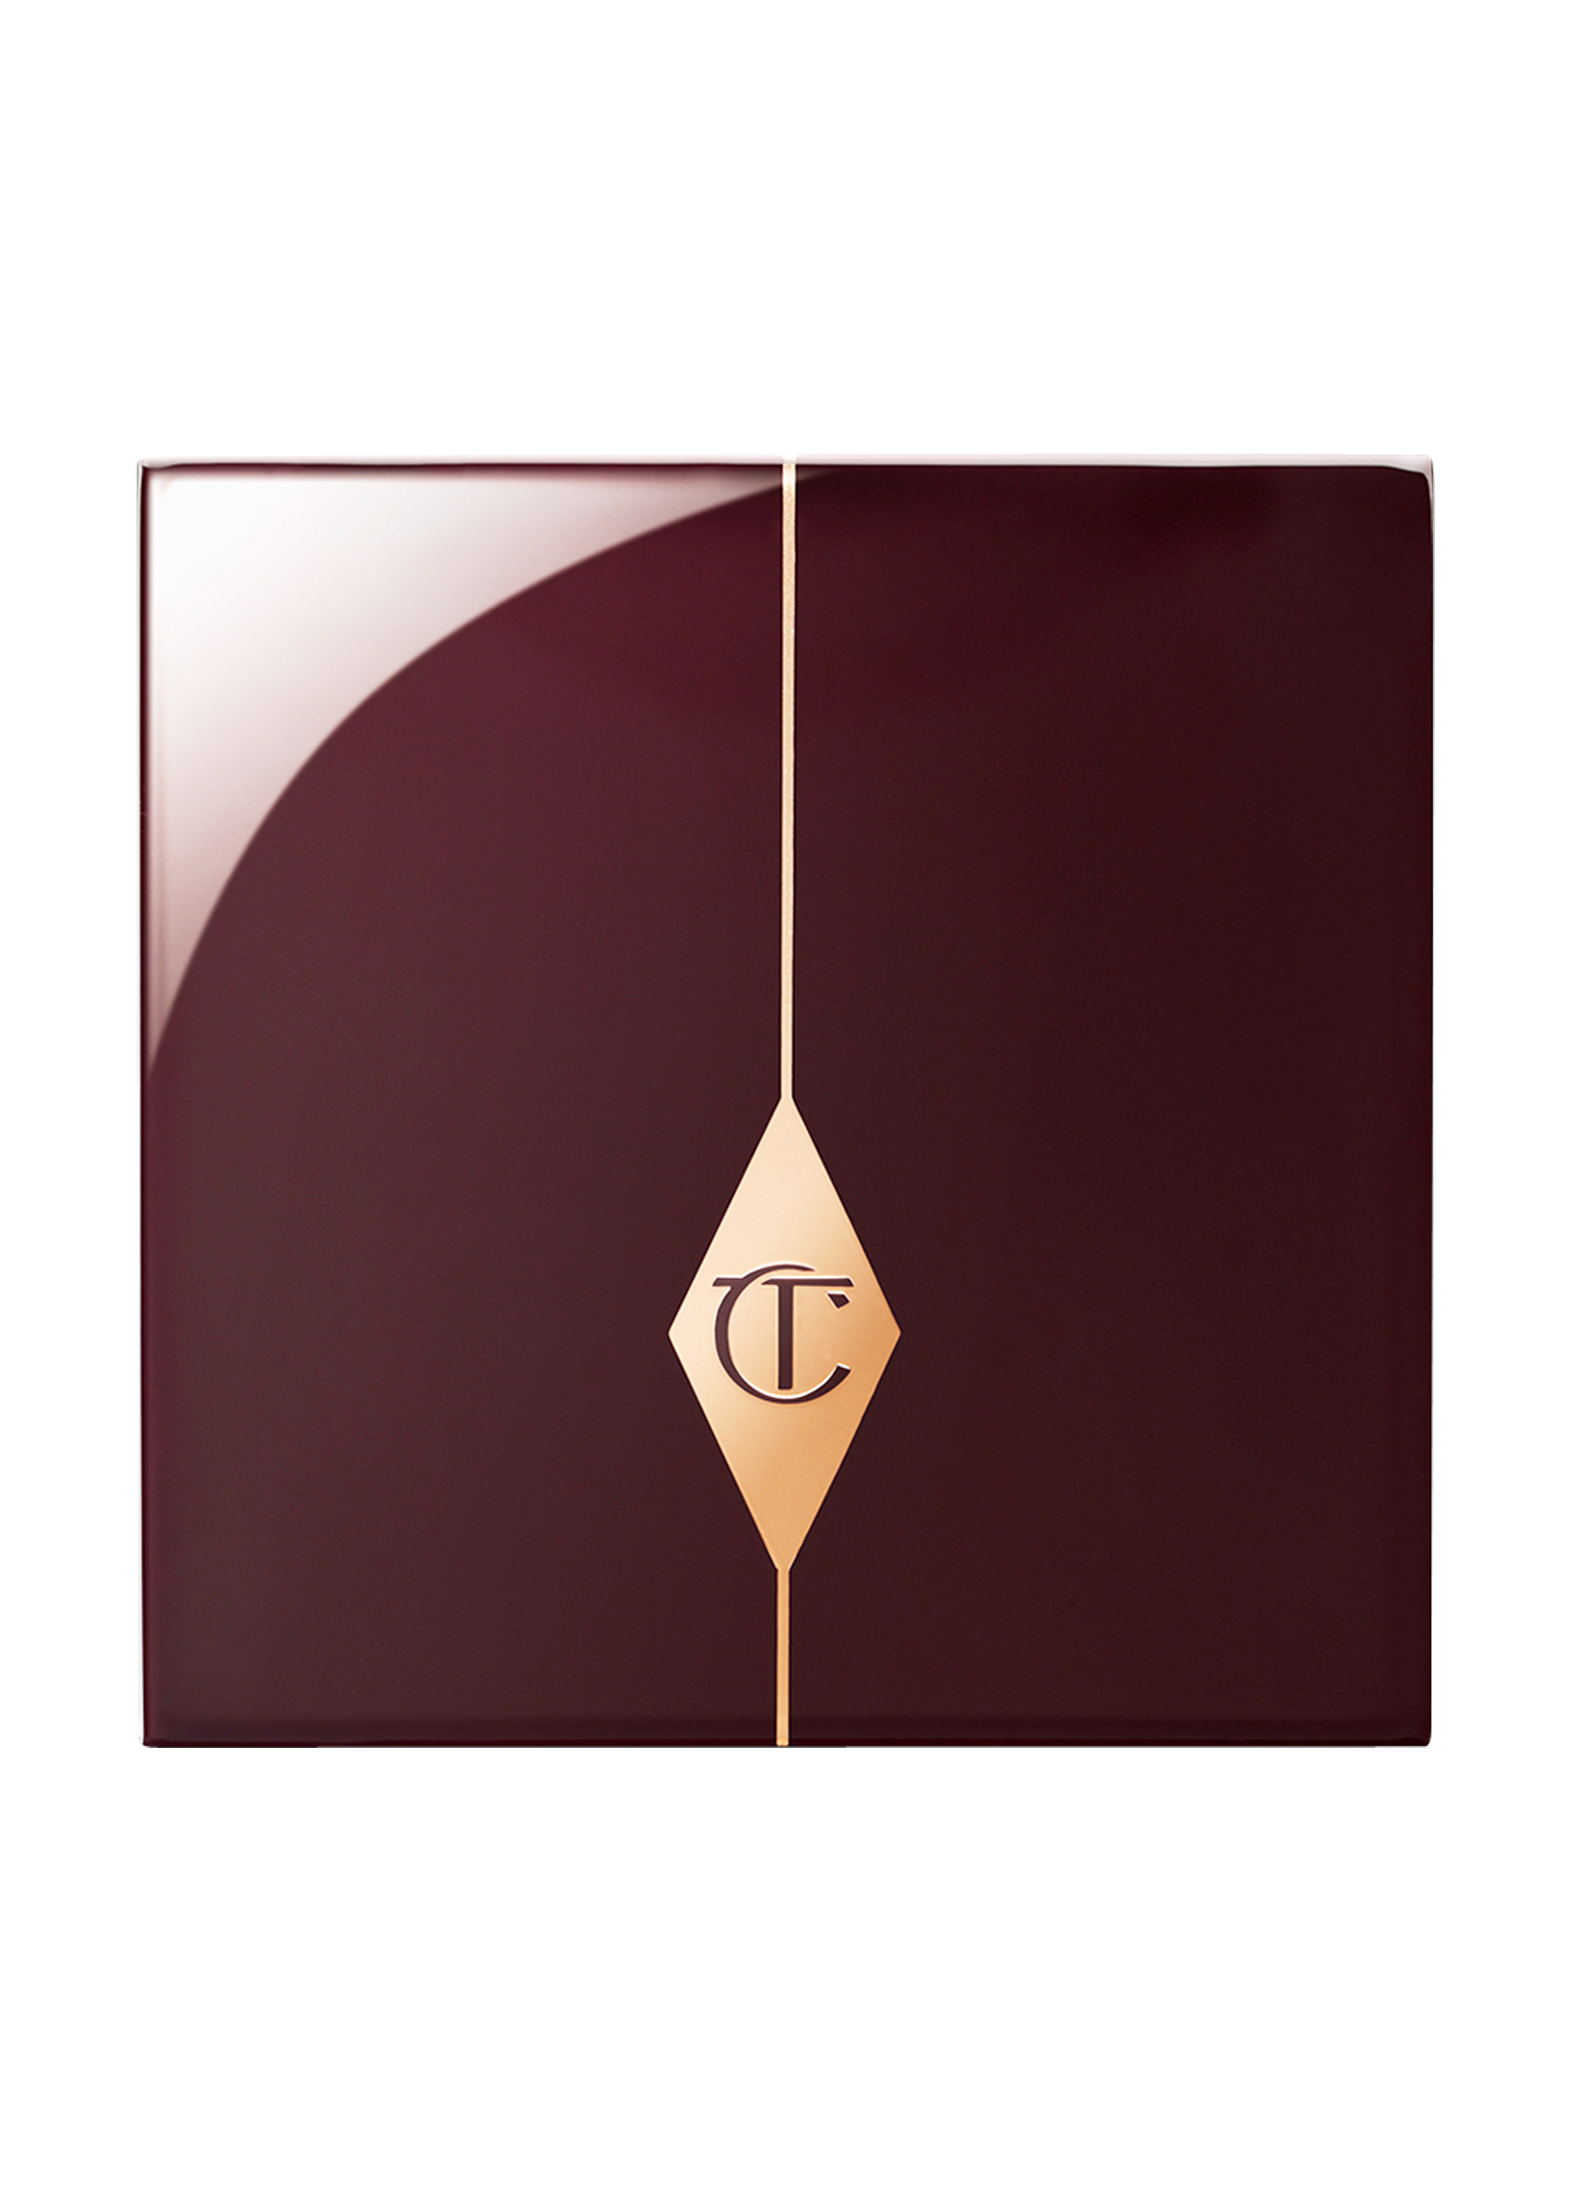 LUXURY PALETTE - THE SOPHISTICATE image number 1